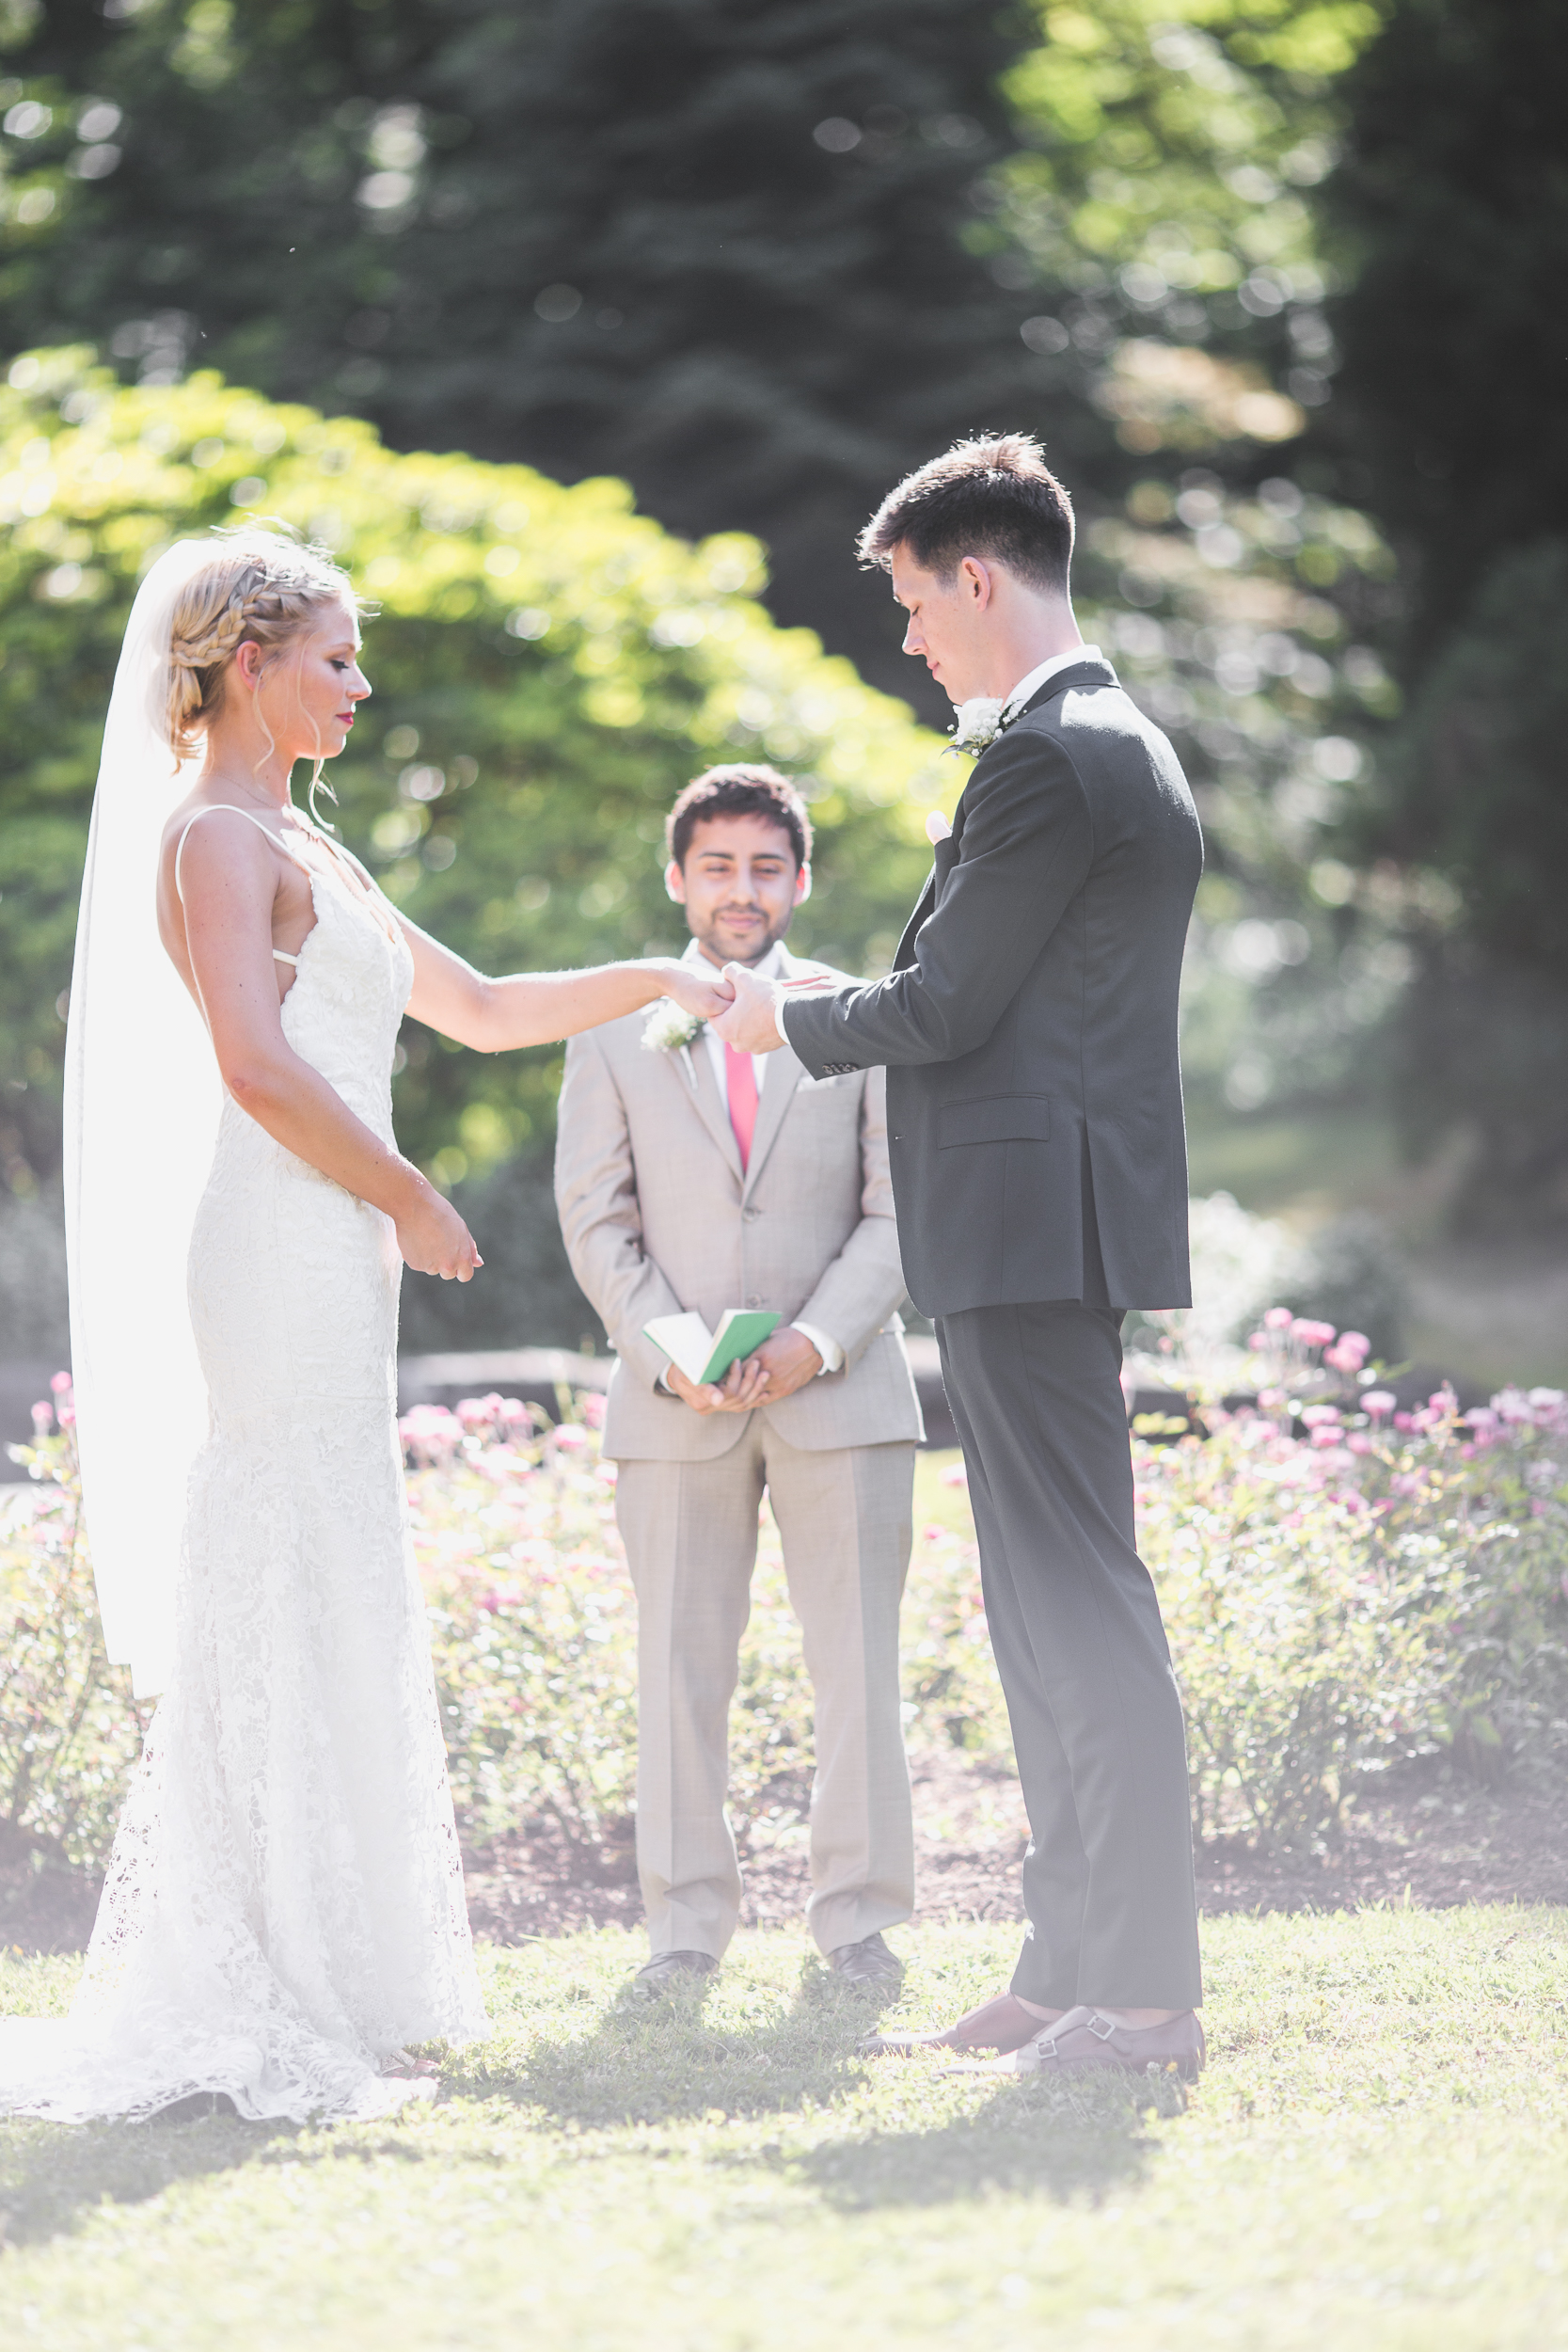 exchanging rings at the alter in leschi park in seattle for a wedding